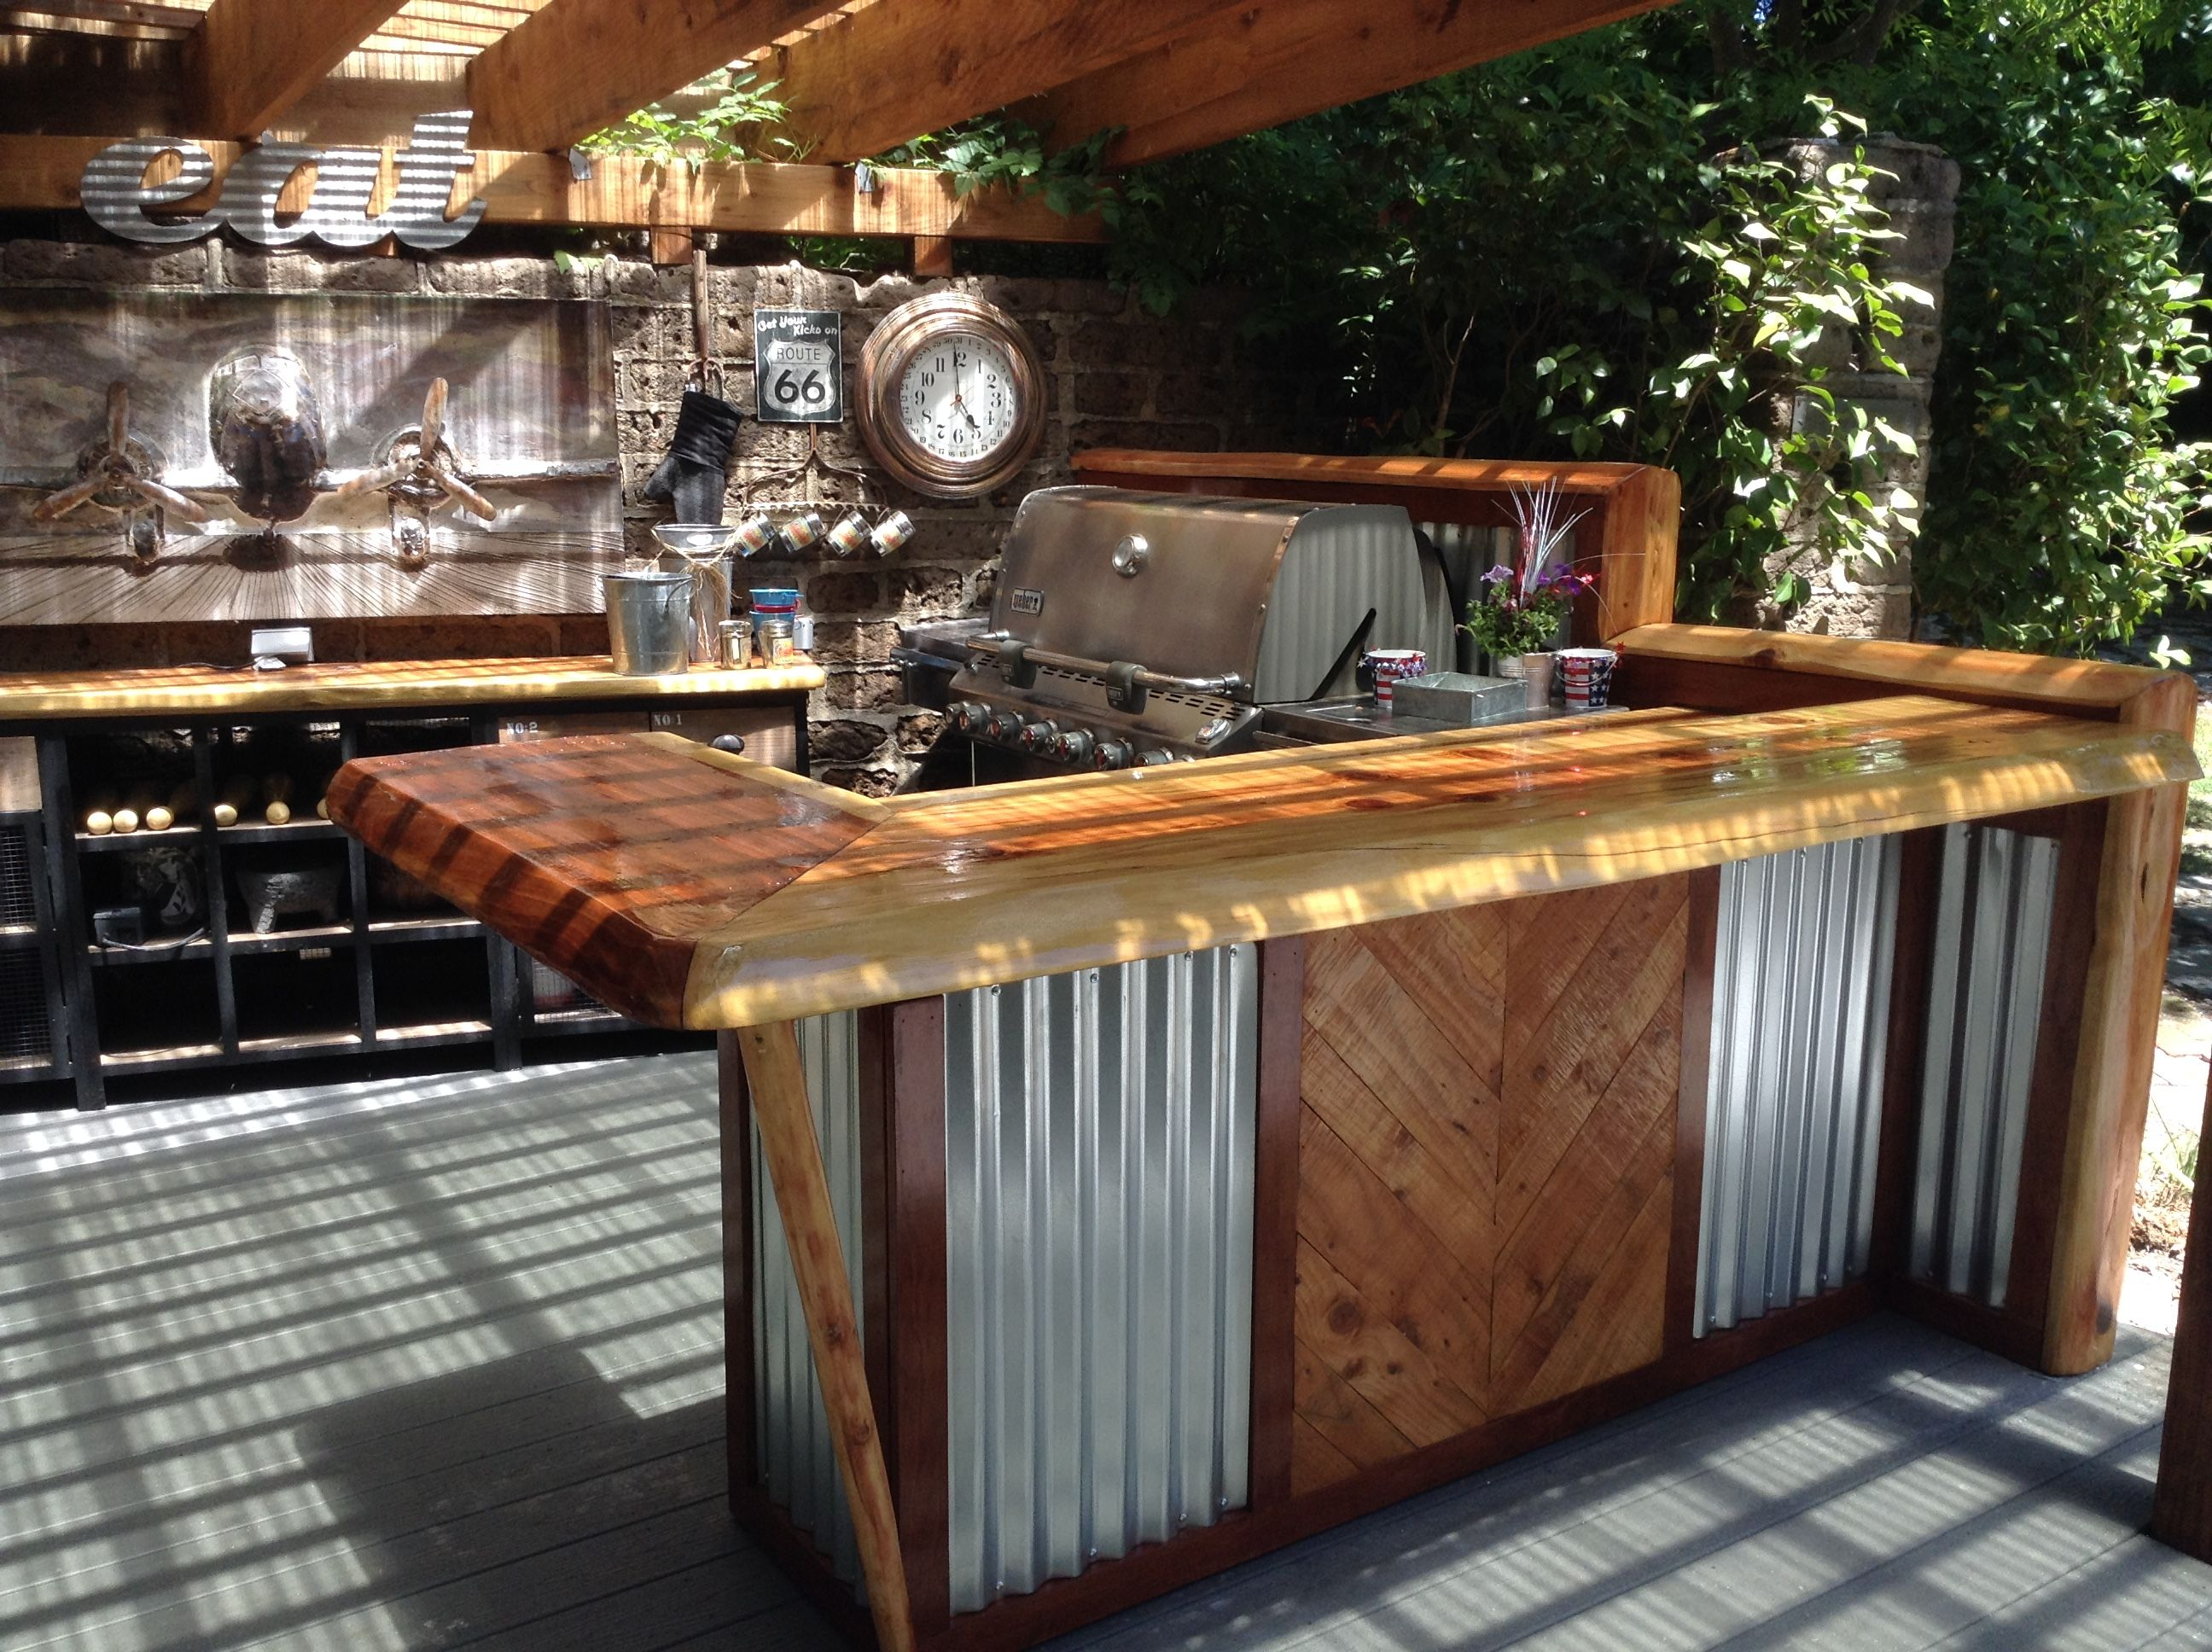 Rustic outdoor kitchen and bar. | Outdoor kitchen ideas /corrugated on rustic garden ideas, rustic shower ideas, kitchen decorating theme ideas, patio kitchen ideas, rustic furniture ideas, rustic kitchen tables for small spaces, rustic summer kitchen, rustic kitchens with fireplaces, rustic firepit ideas, rustic bar ideas, rustic bedroom ideas, whitestone kitchen backsplash ideas, rustic arbor ideas, rustic storage ideas, rustic kitchen cupboards, barn wood kitchen ideas, rustic kitchen islands, rustic fire pit landscaping ideas, rustic dining room ideas, kitchen shades ideas,